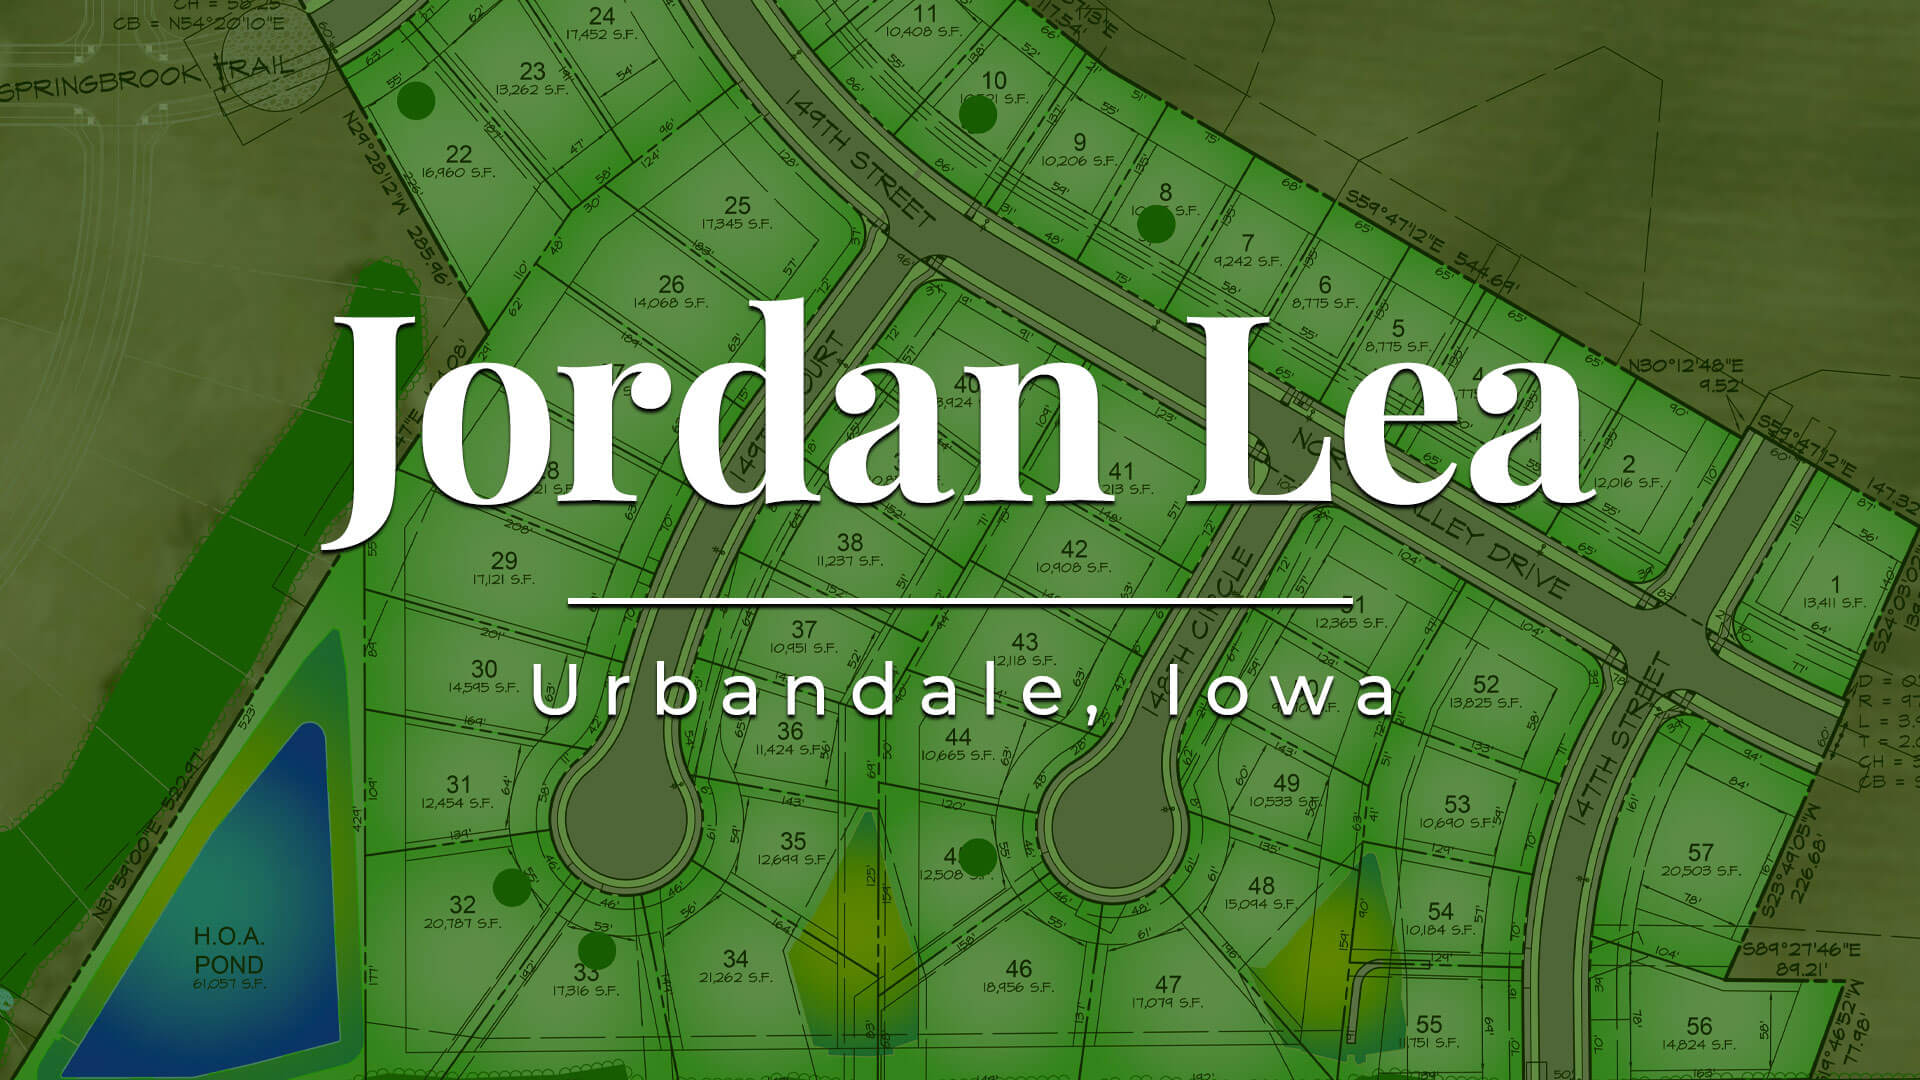 Jordan Lea lots for sale in Urbandale, Iowa